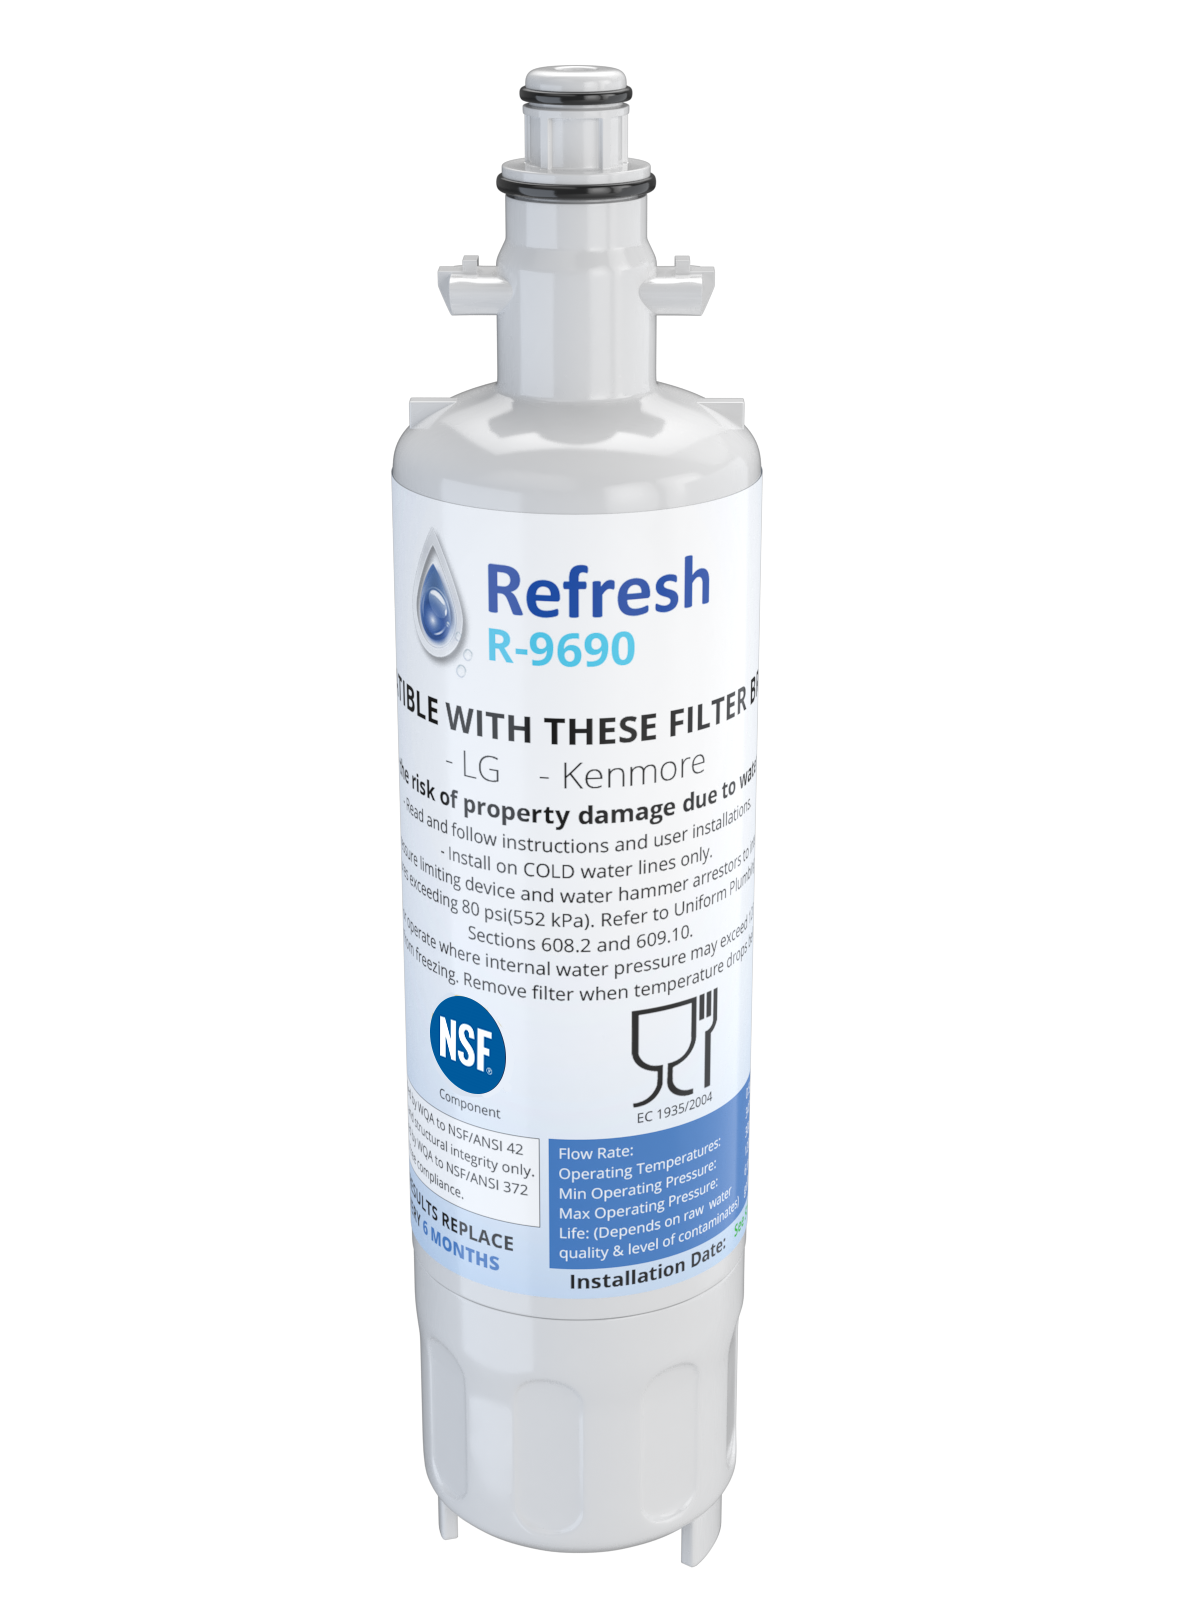 Refresh R-9690 Replacement Water Filter - Fits LG LT700P, ADQ36006101, LFX25976ST, and more!